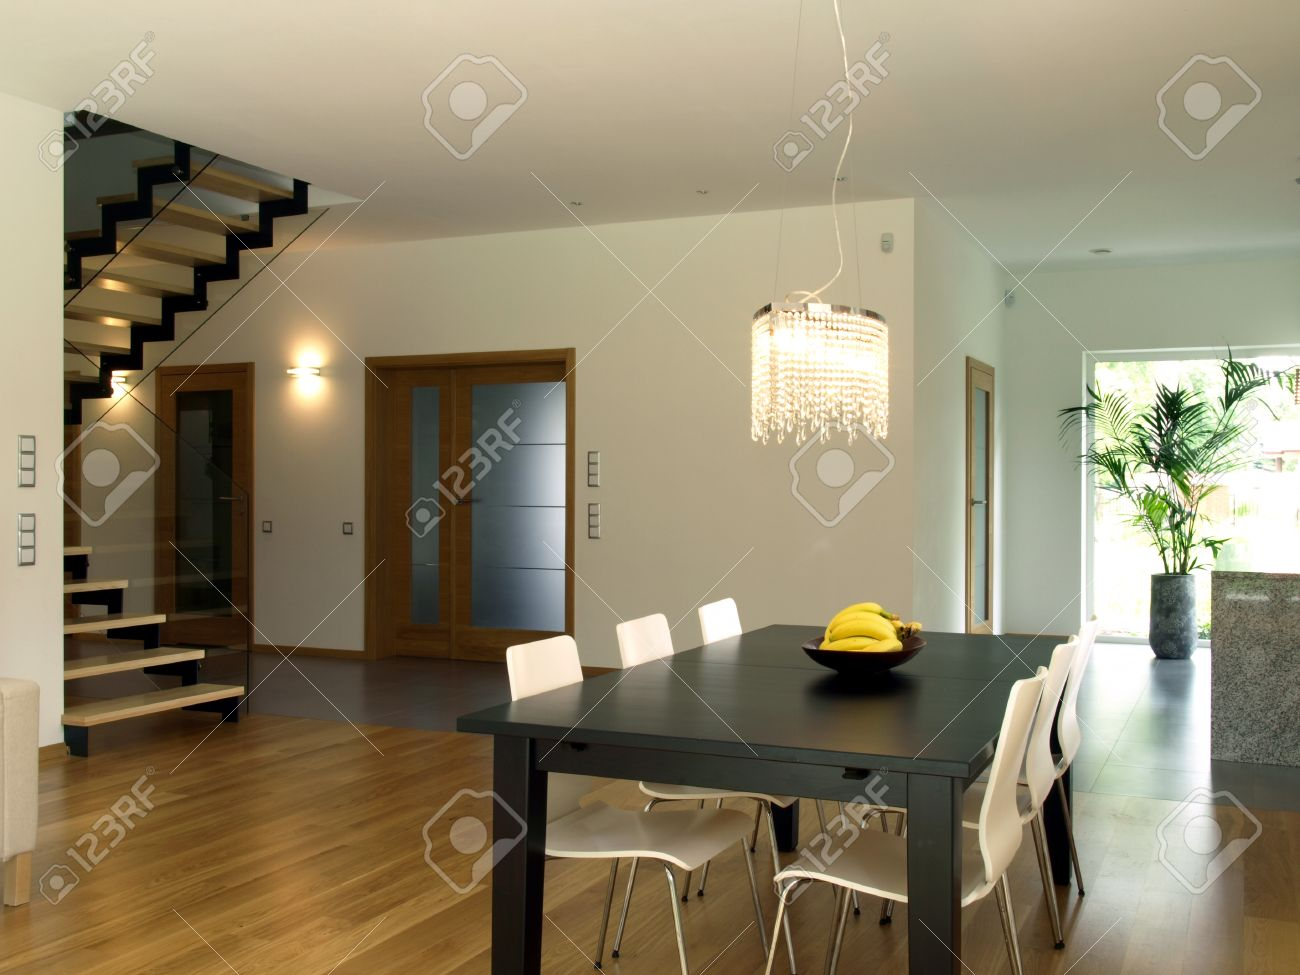 modern mansion dining room. Dining Room, Staircase And Corridor Of Modern House Stock Photo - 14509601 Mansion Room